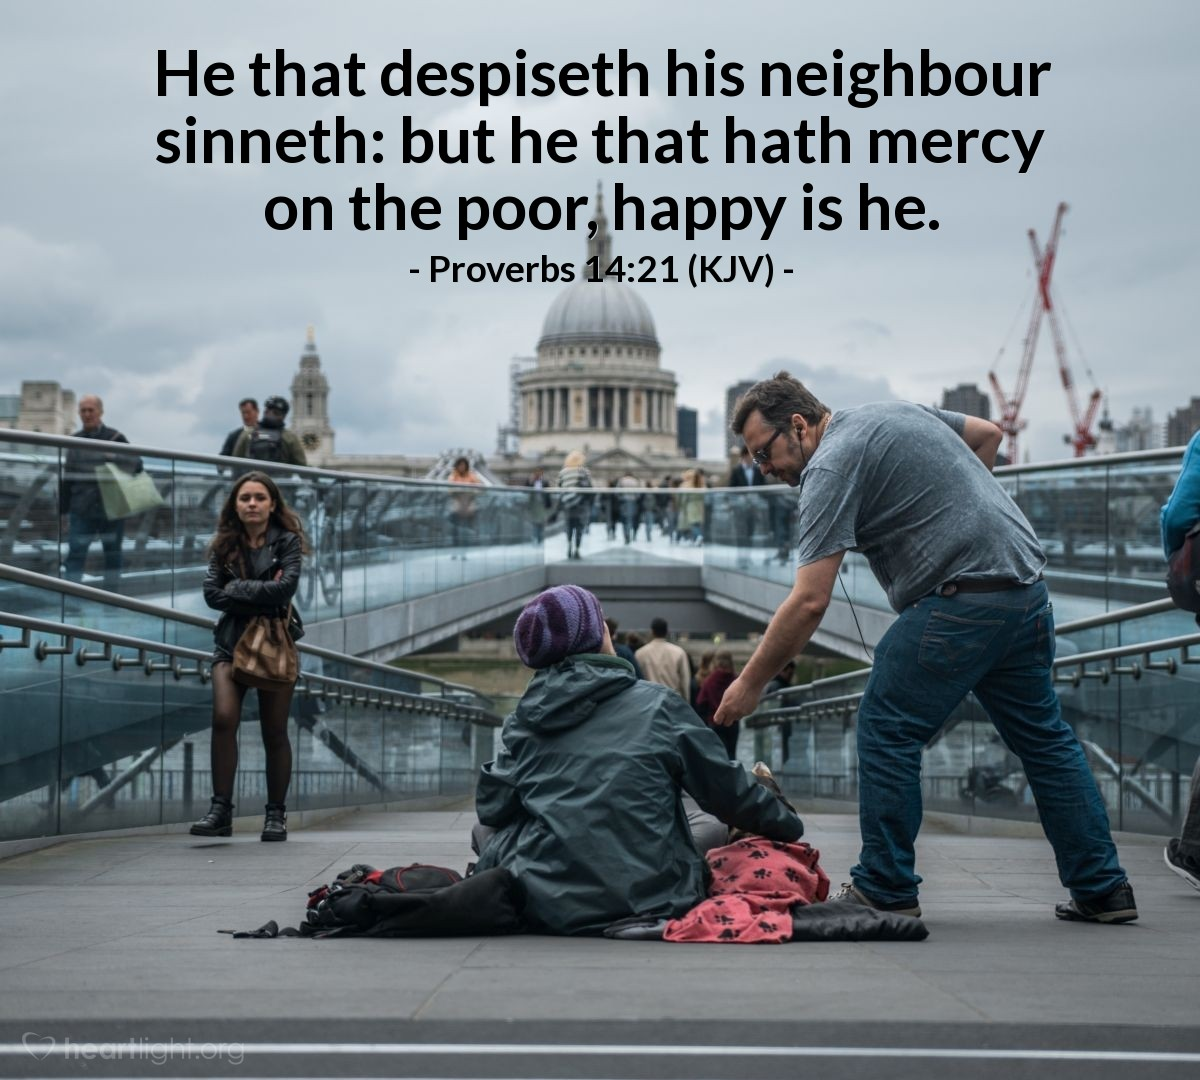 Illustration of Proverbs 14:21 (KJV) — He that despiseth his neighbour sinneth: but he that hath mercy on the poor, happy is he.